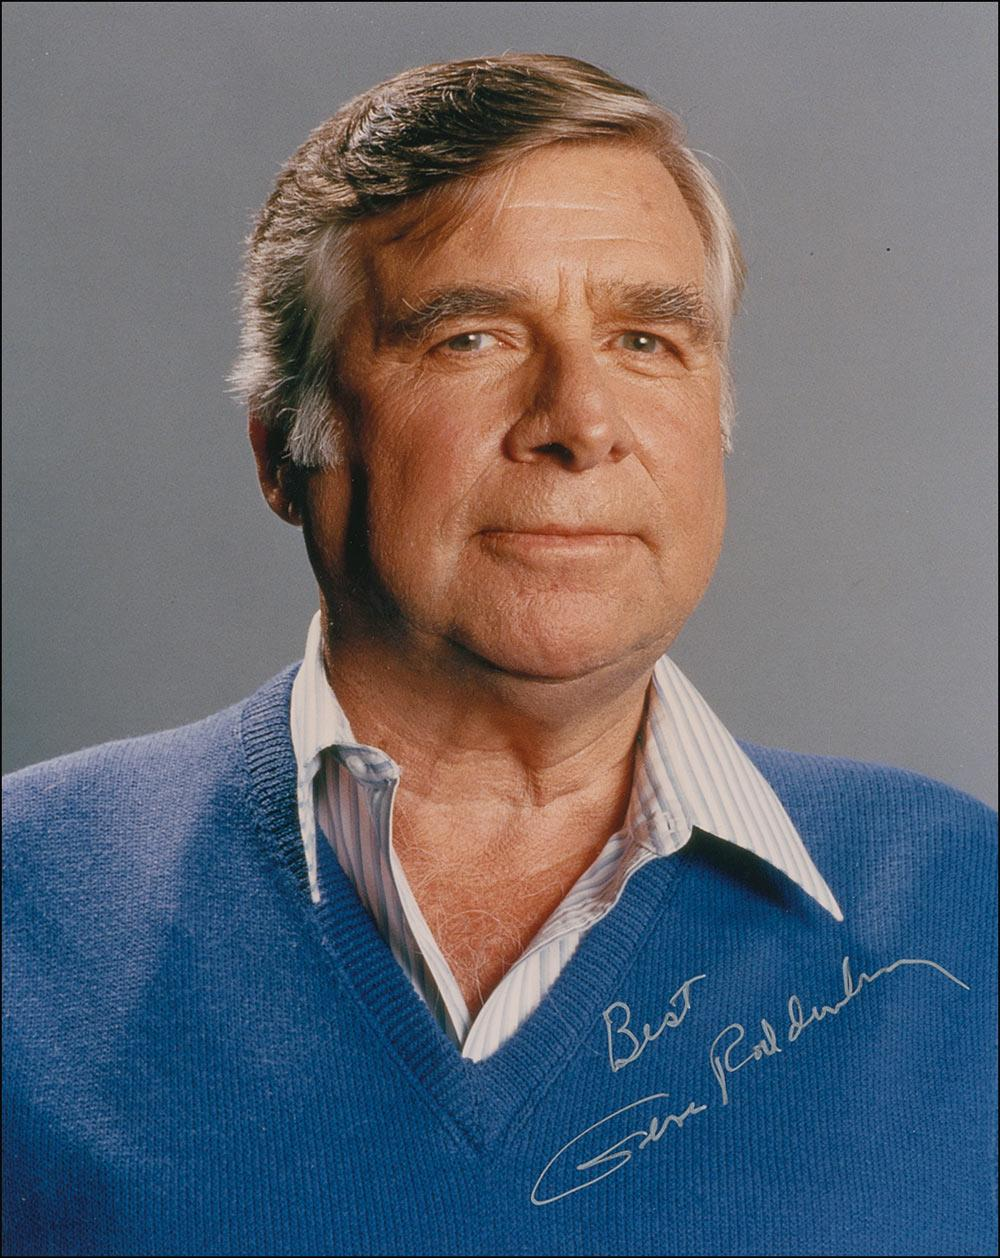 Gene Roddenberry medialiveauctiongroupneti8790100150841jpgv